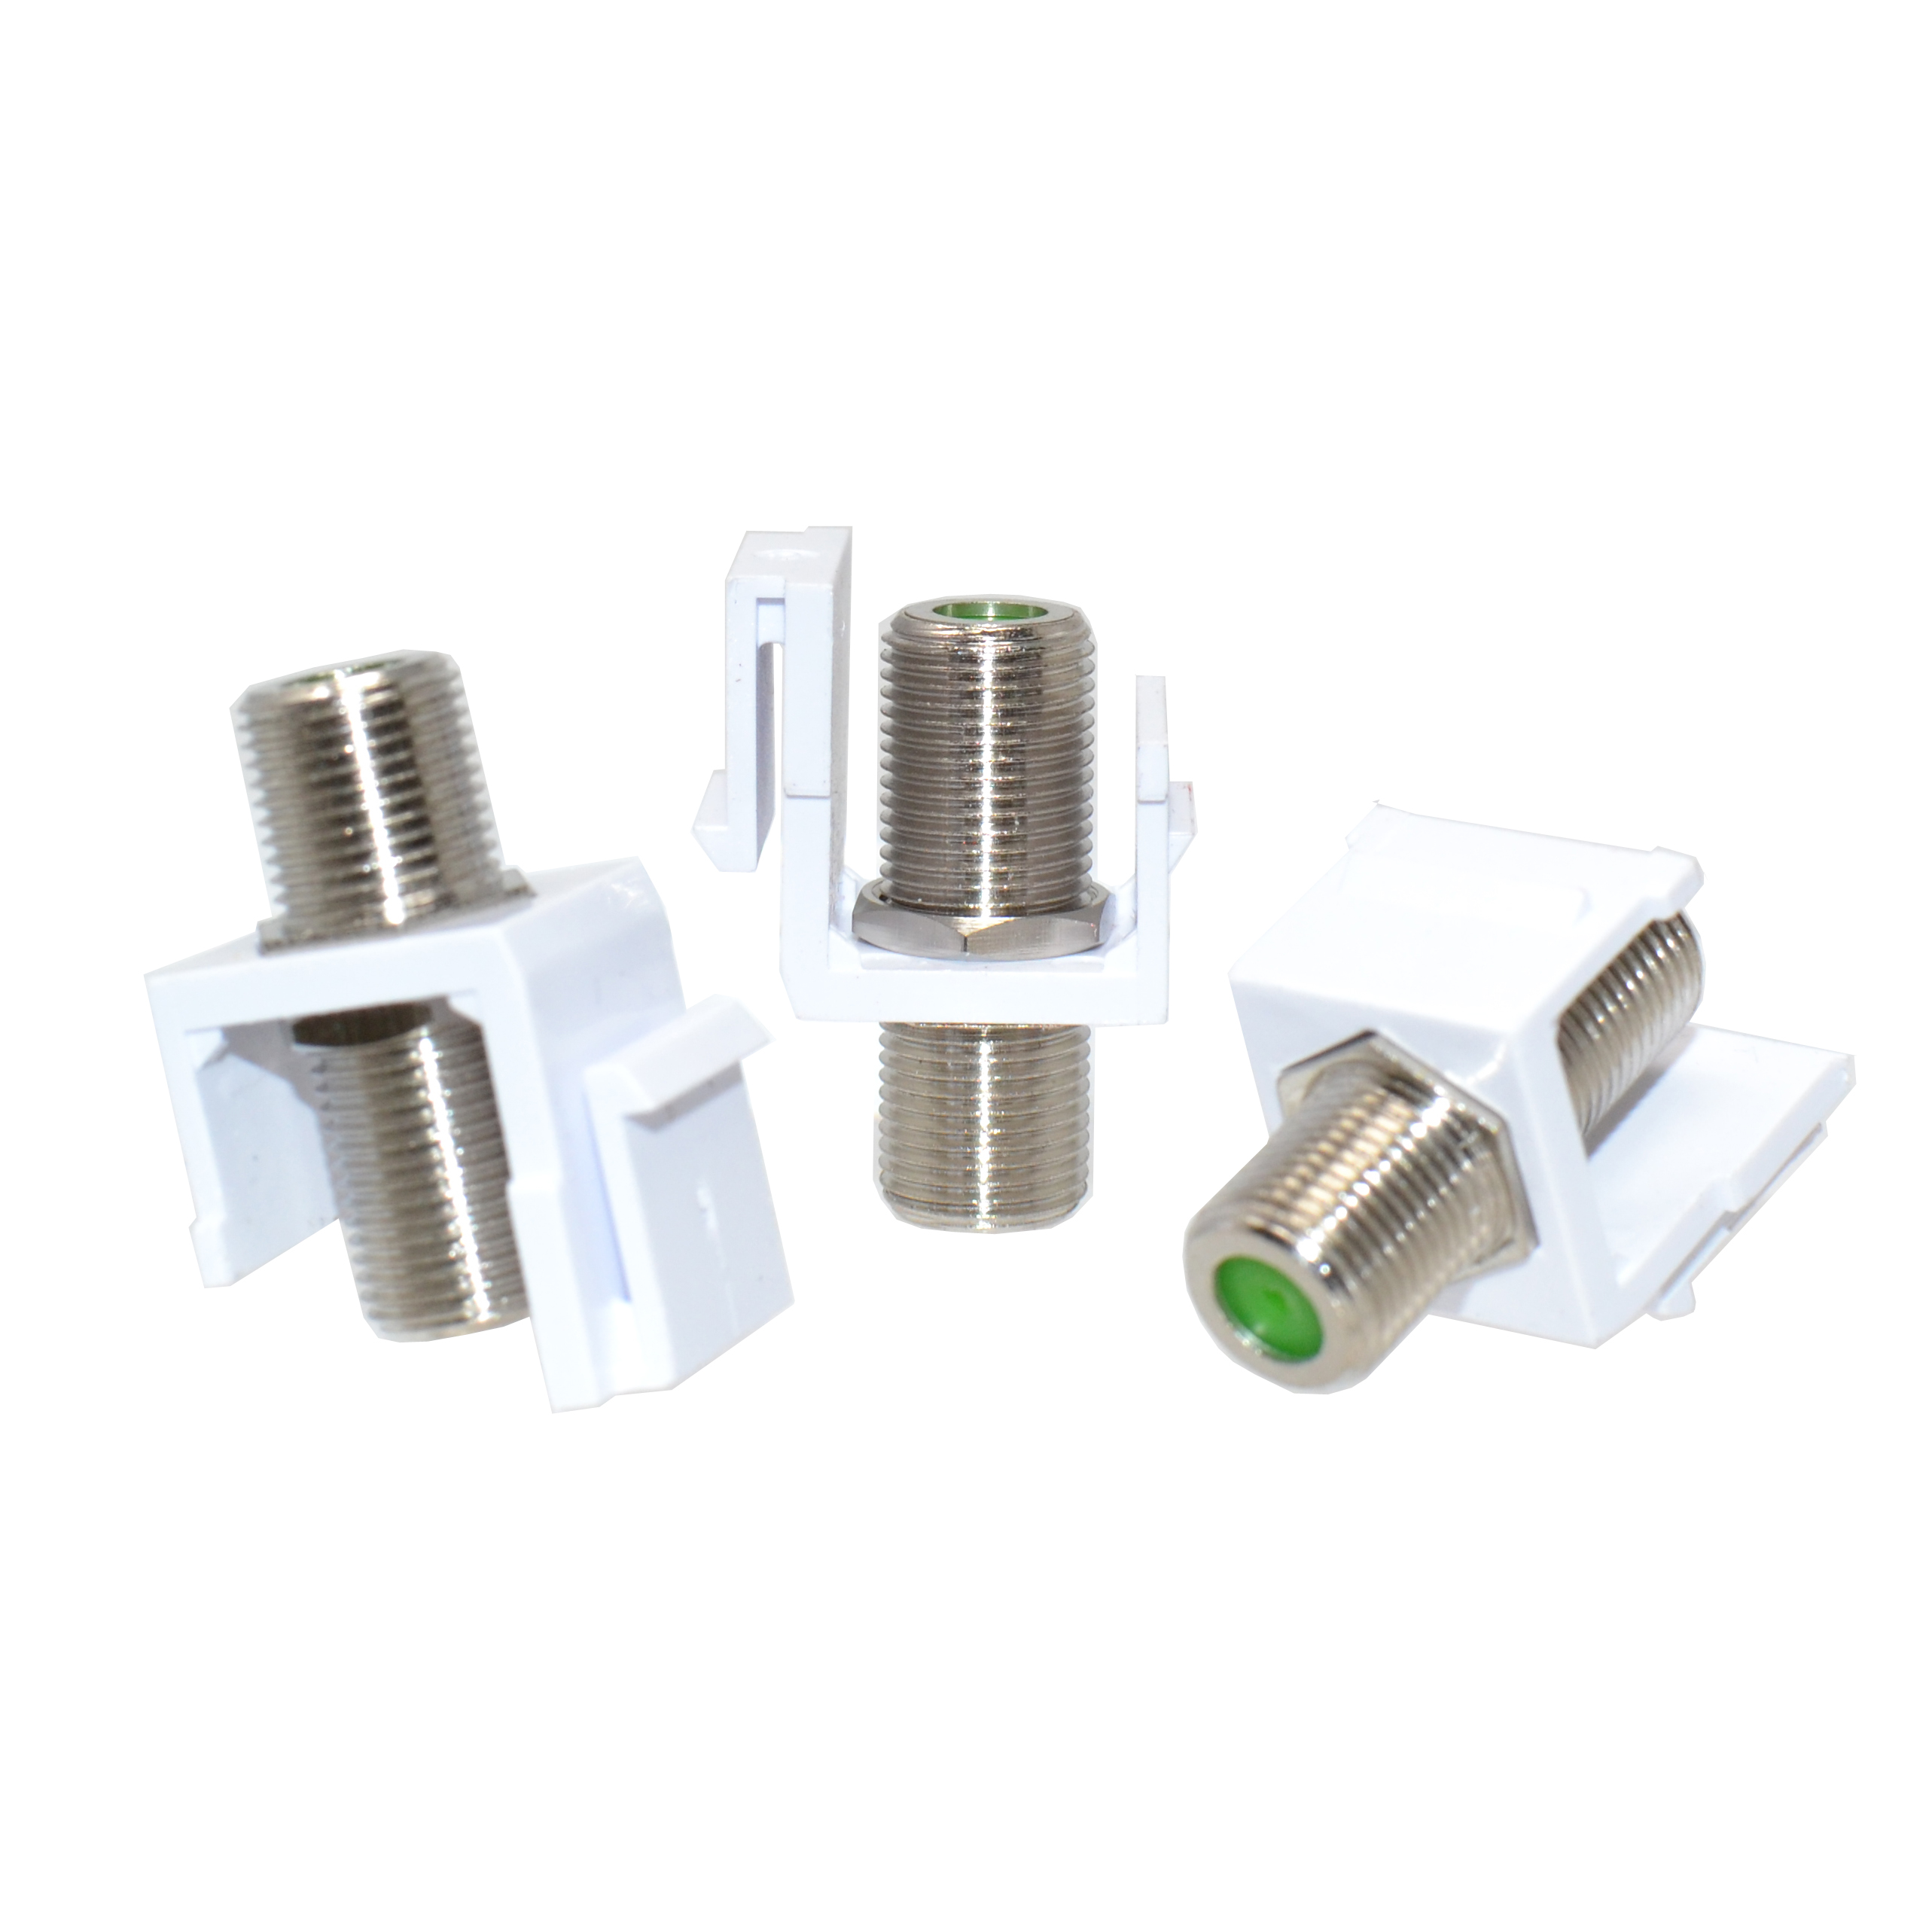 30pcs Ivory Snap-in F type Coax Connector Blank Insert for Keystone Wall Plate